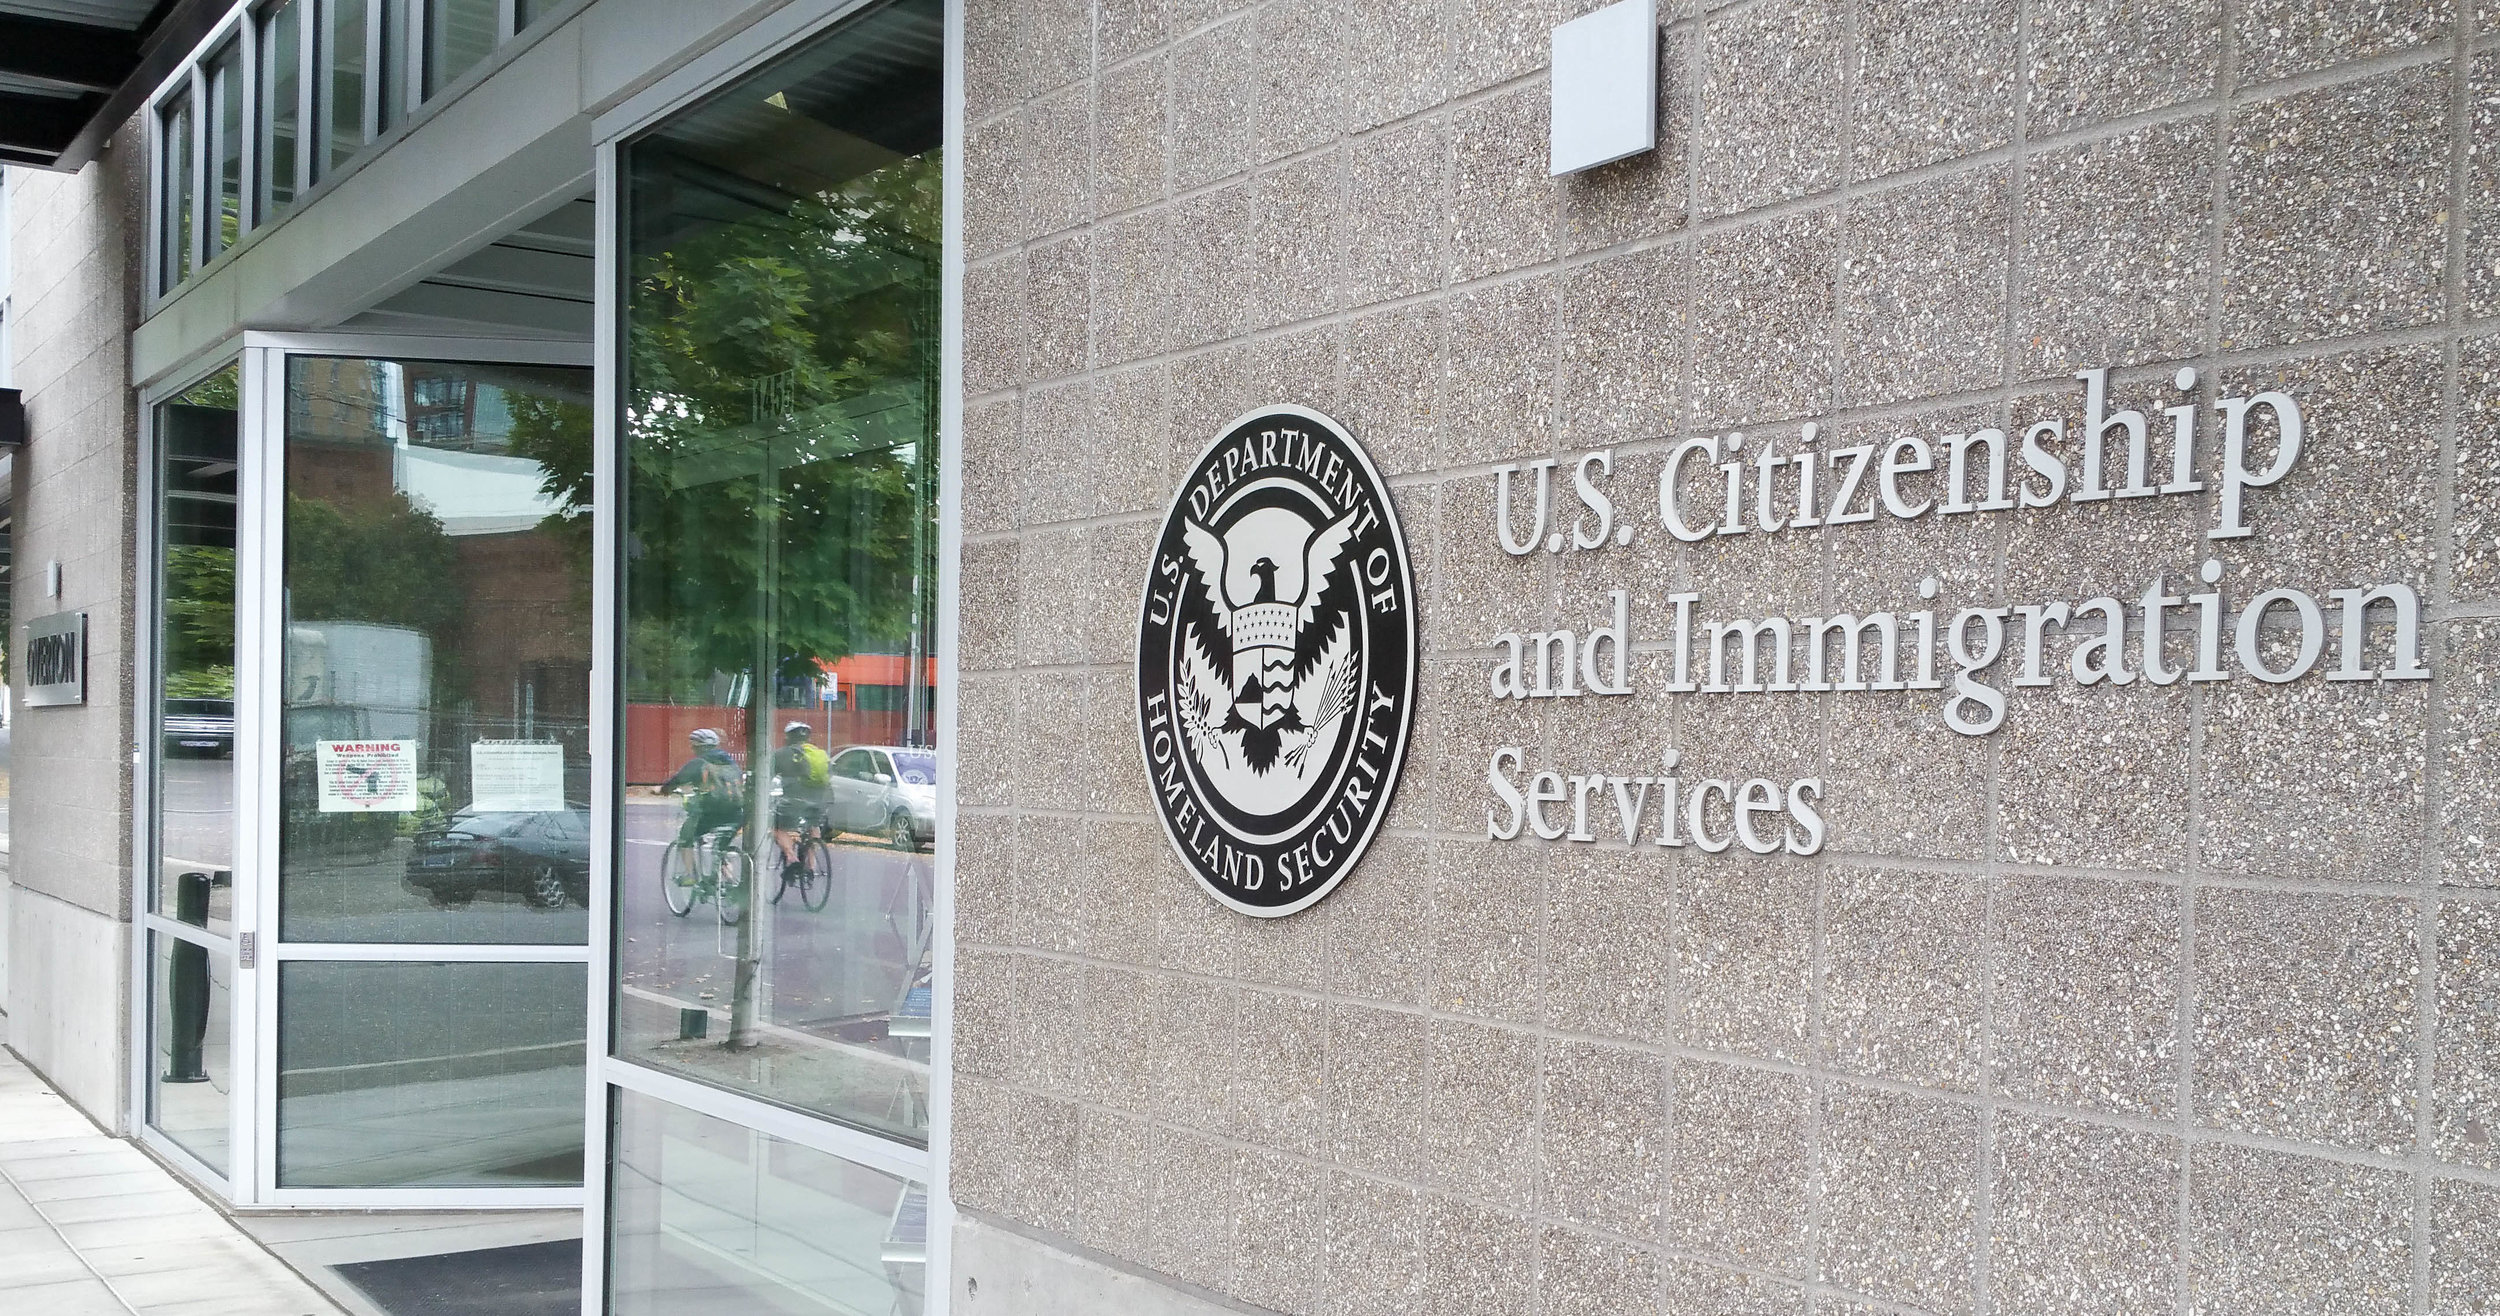 U.S.-Citizenship-and-Immigration-Services-Office-(USCIS)-614127238_5000x2620.jpeg